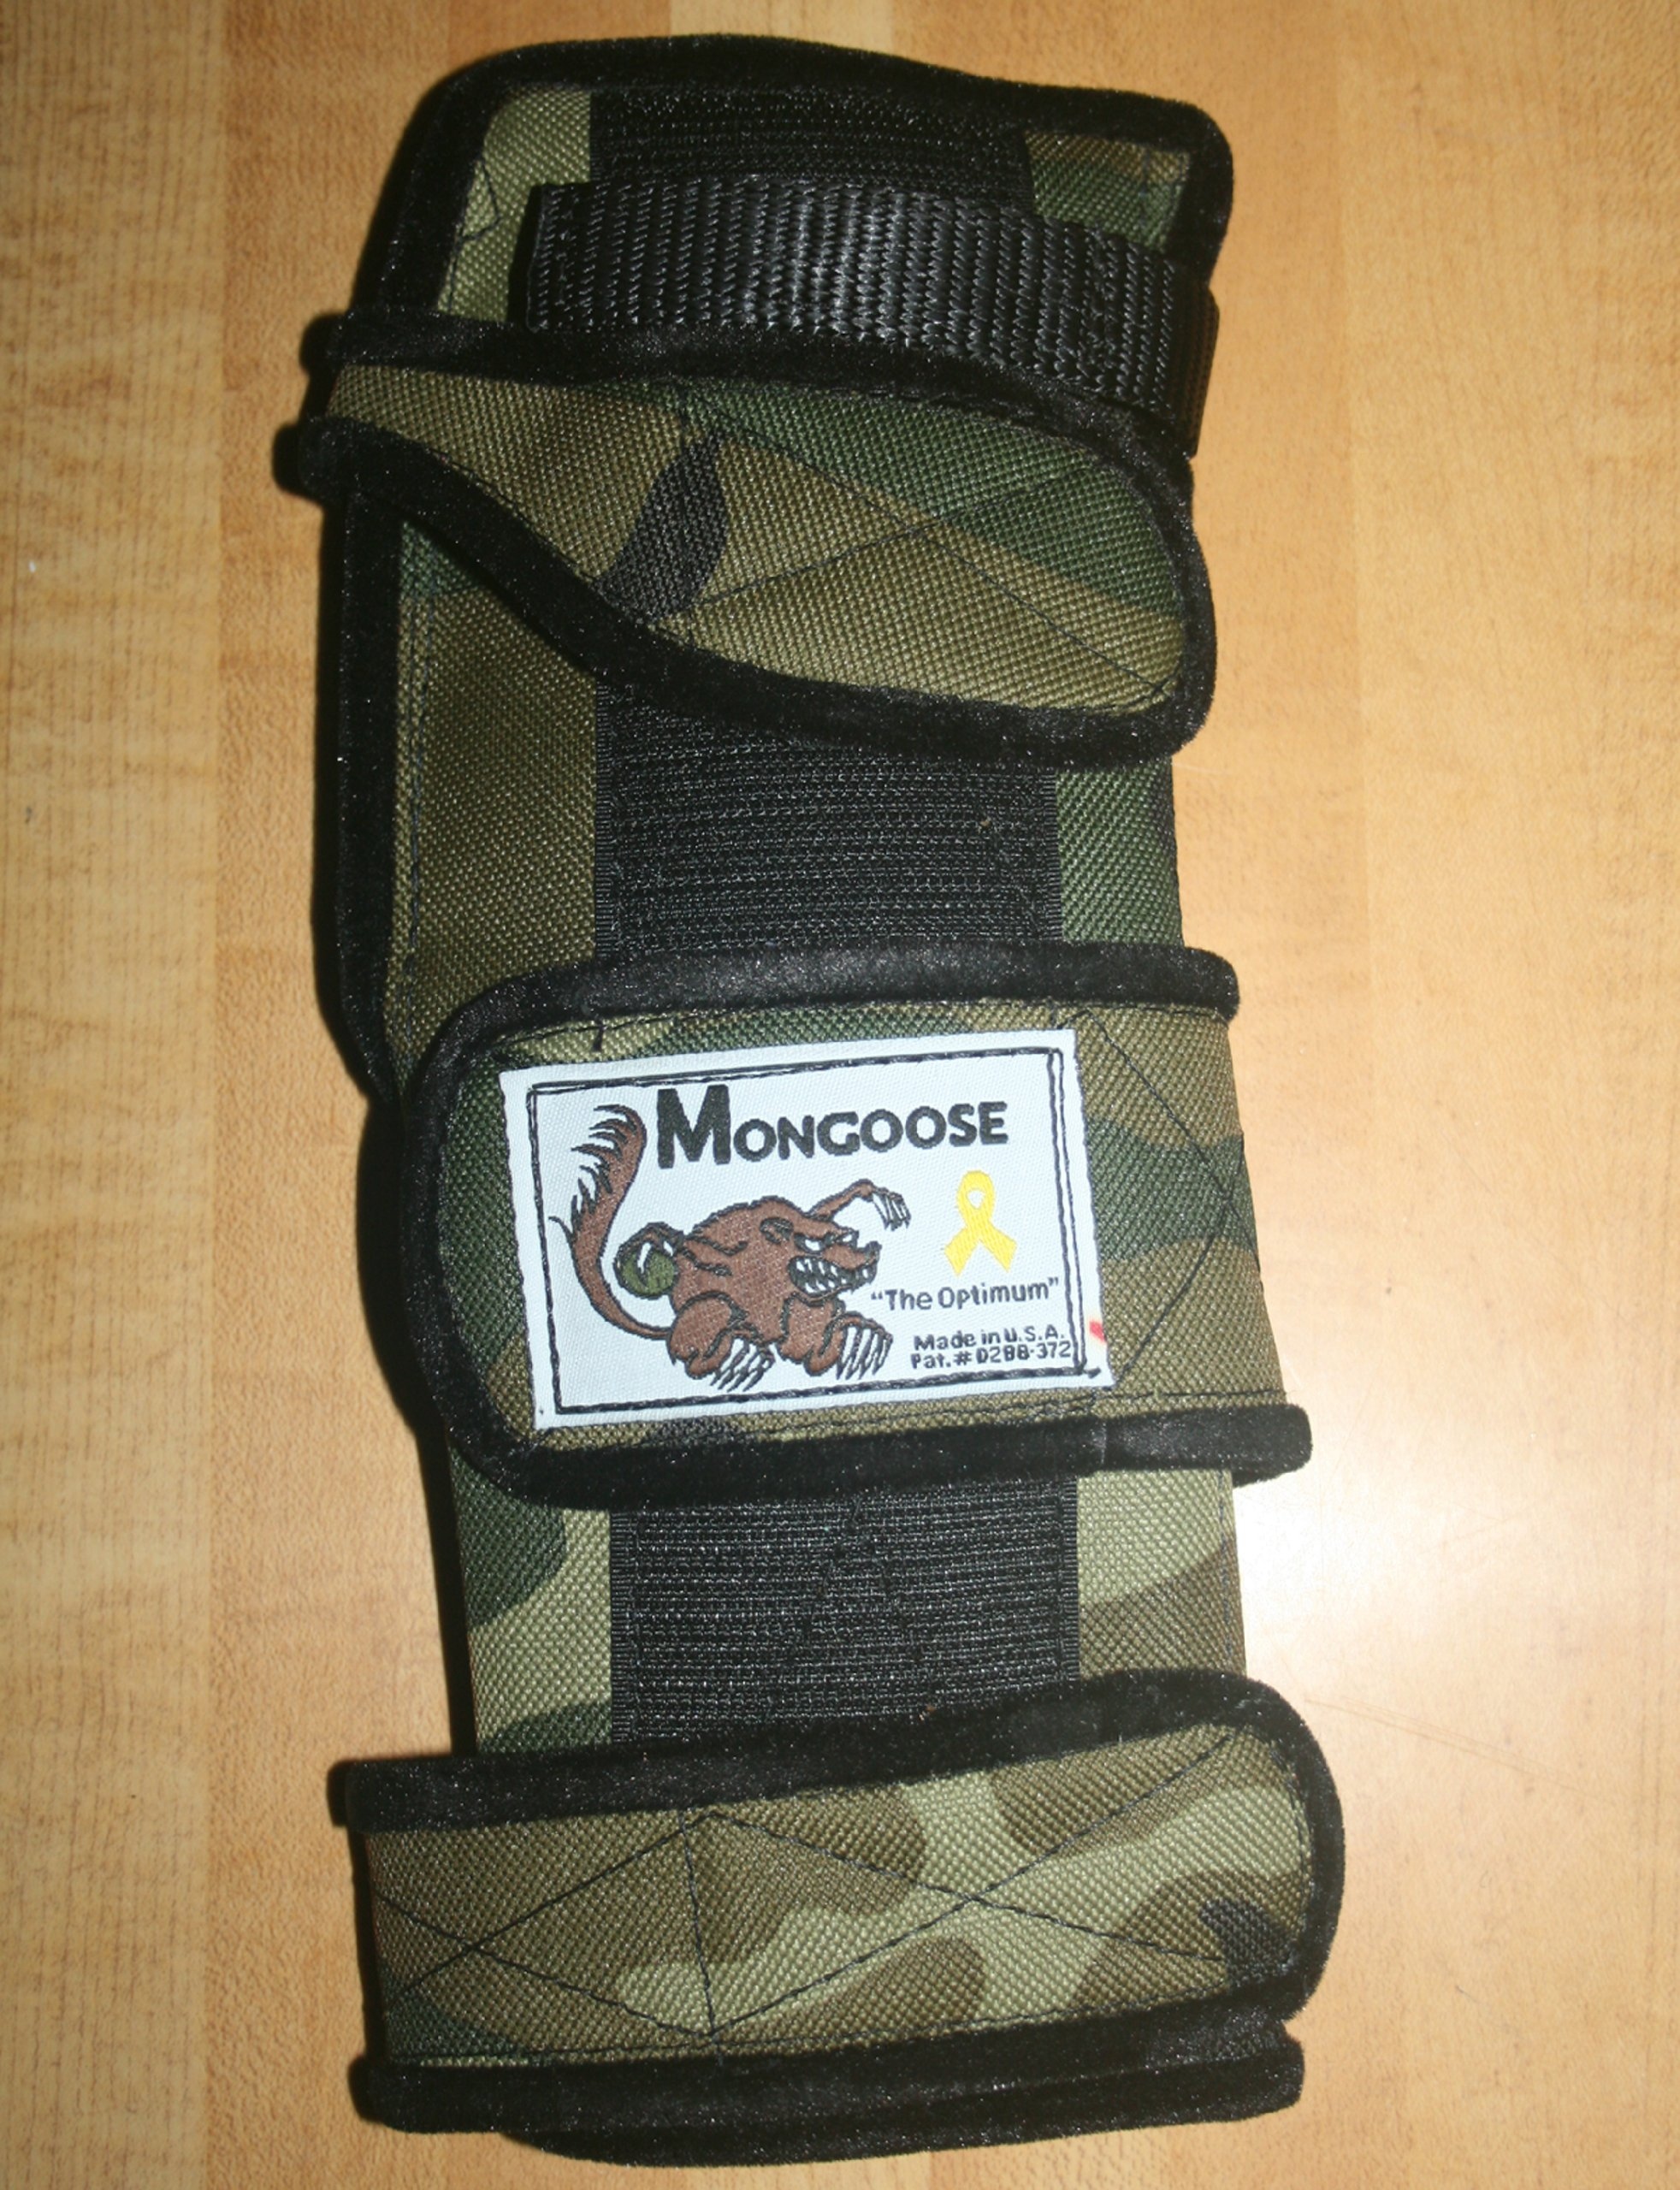 Mongoose ''Optimum bowling Wrist Support Right hand, Medium, Camo